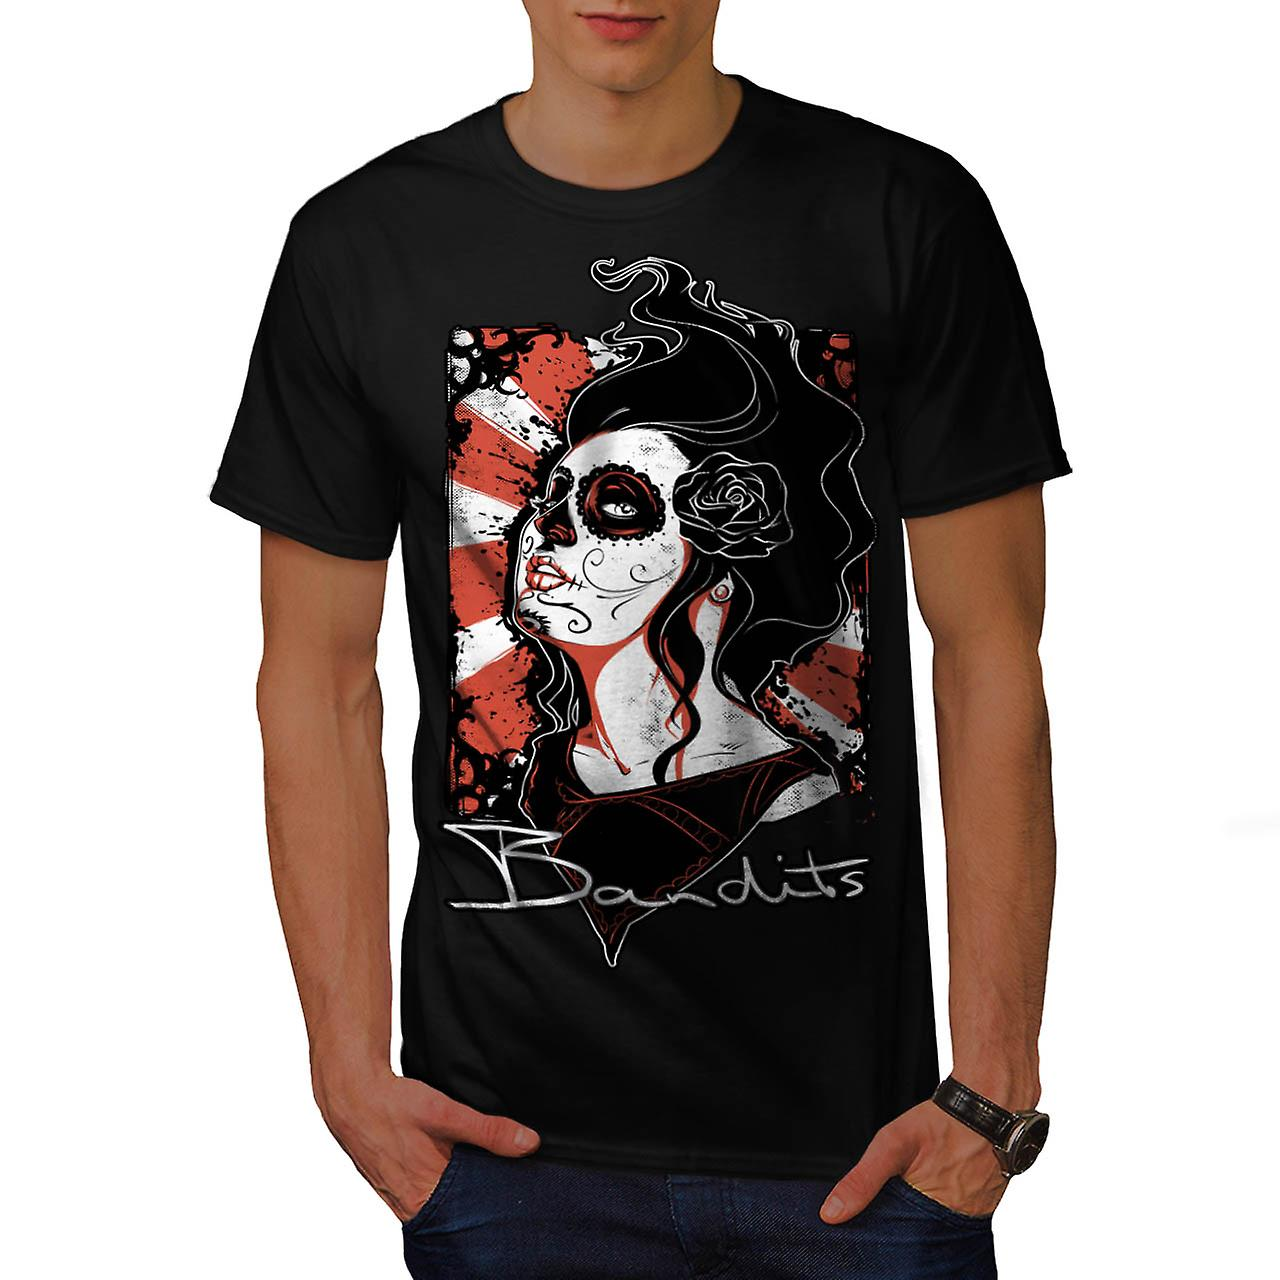 Bandits Cabaret Love Goth Queen Men Black T-shirt | Wellcoda